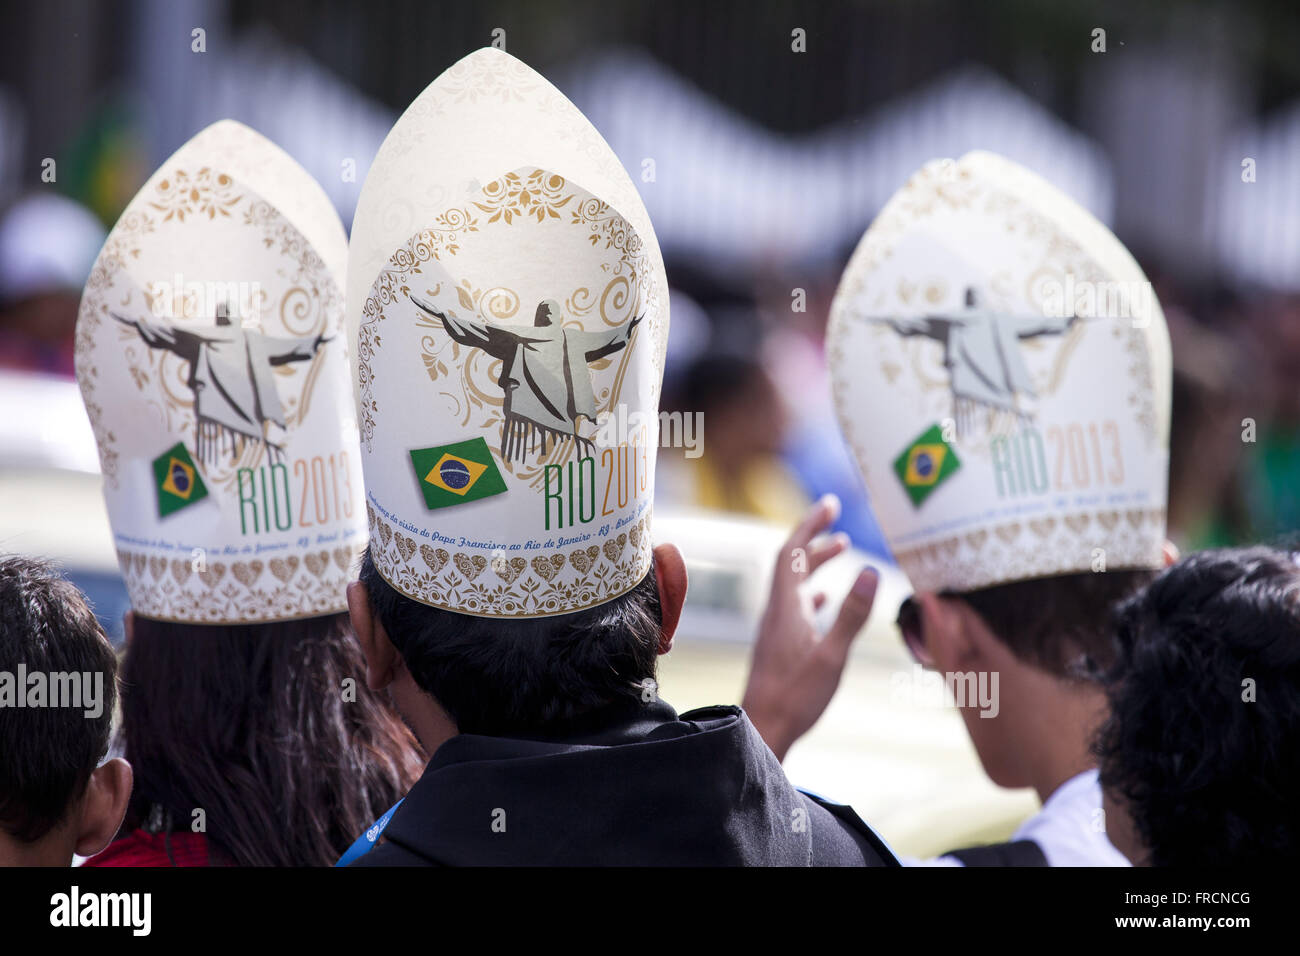 Youth with replica miter - hat worn by the pope - in World Youth Day Rio 2013 Stock Photo